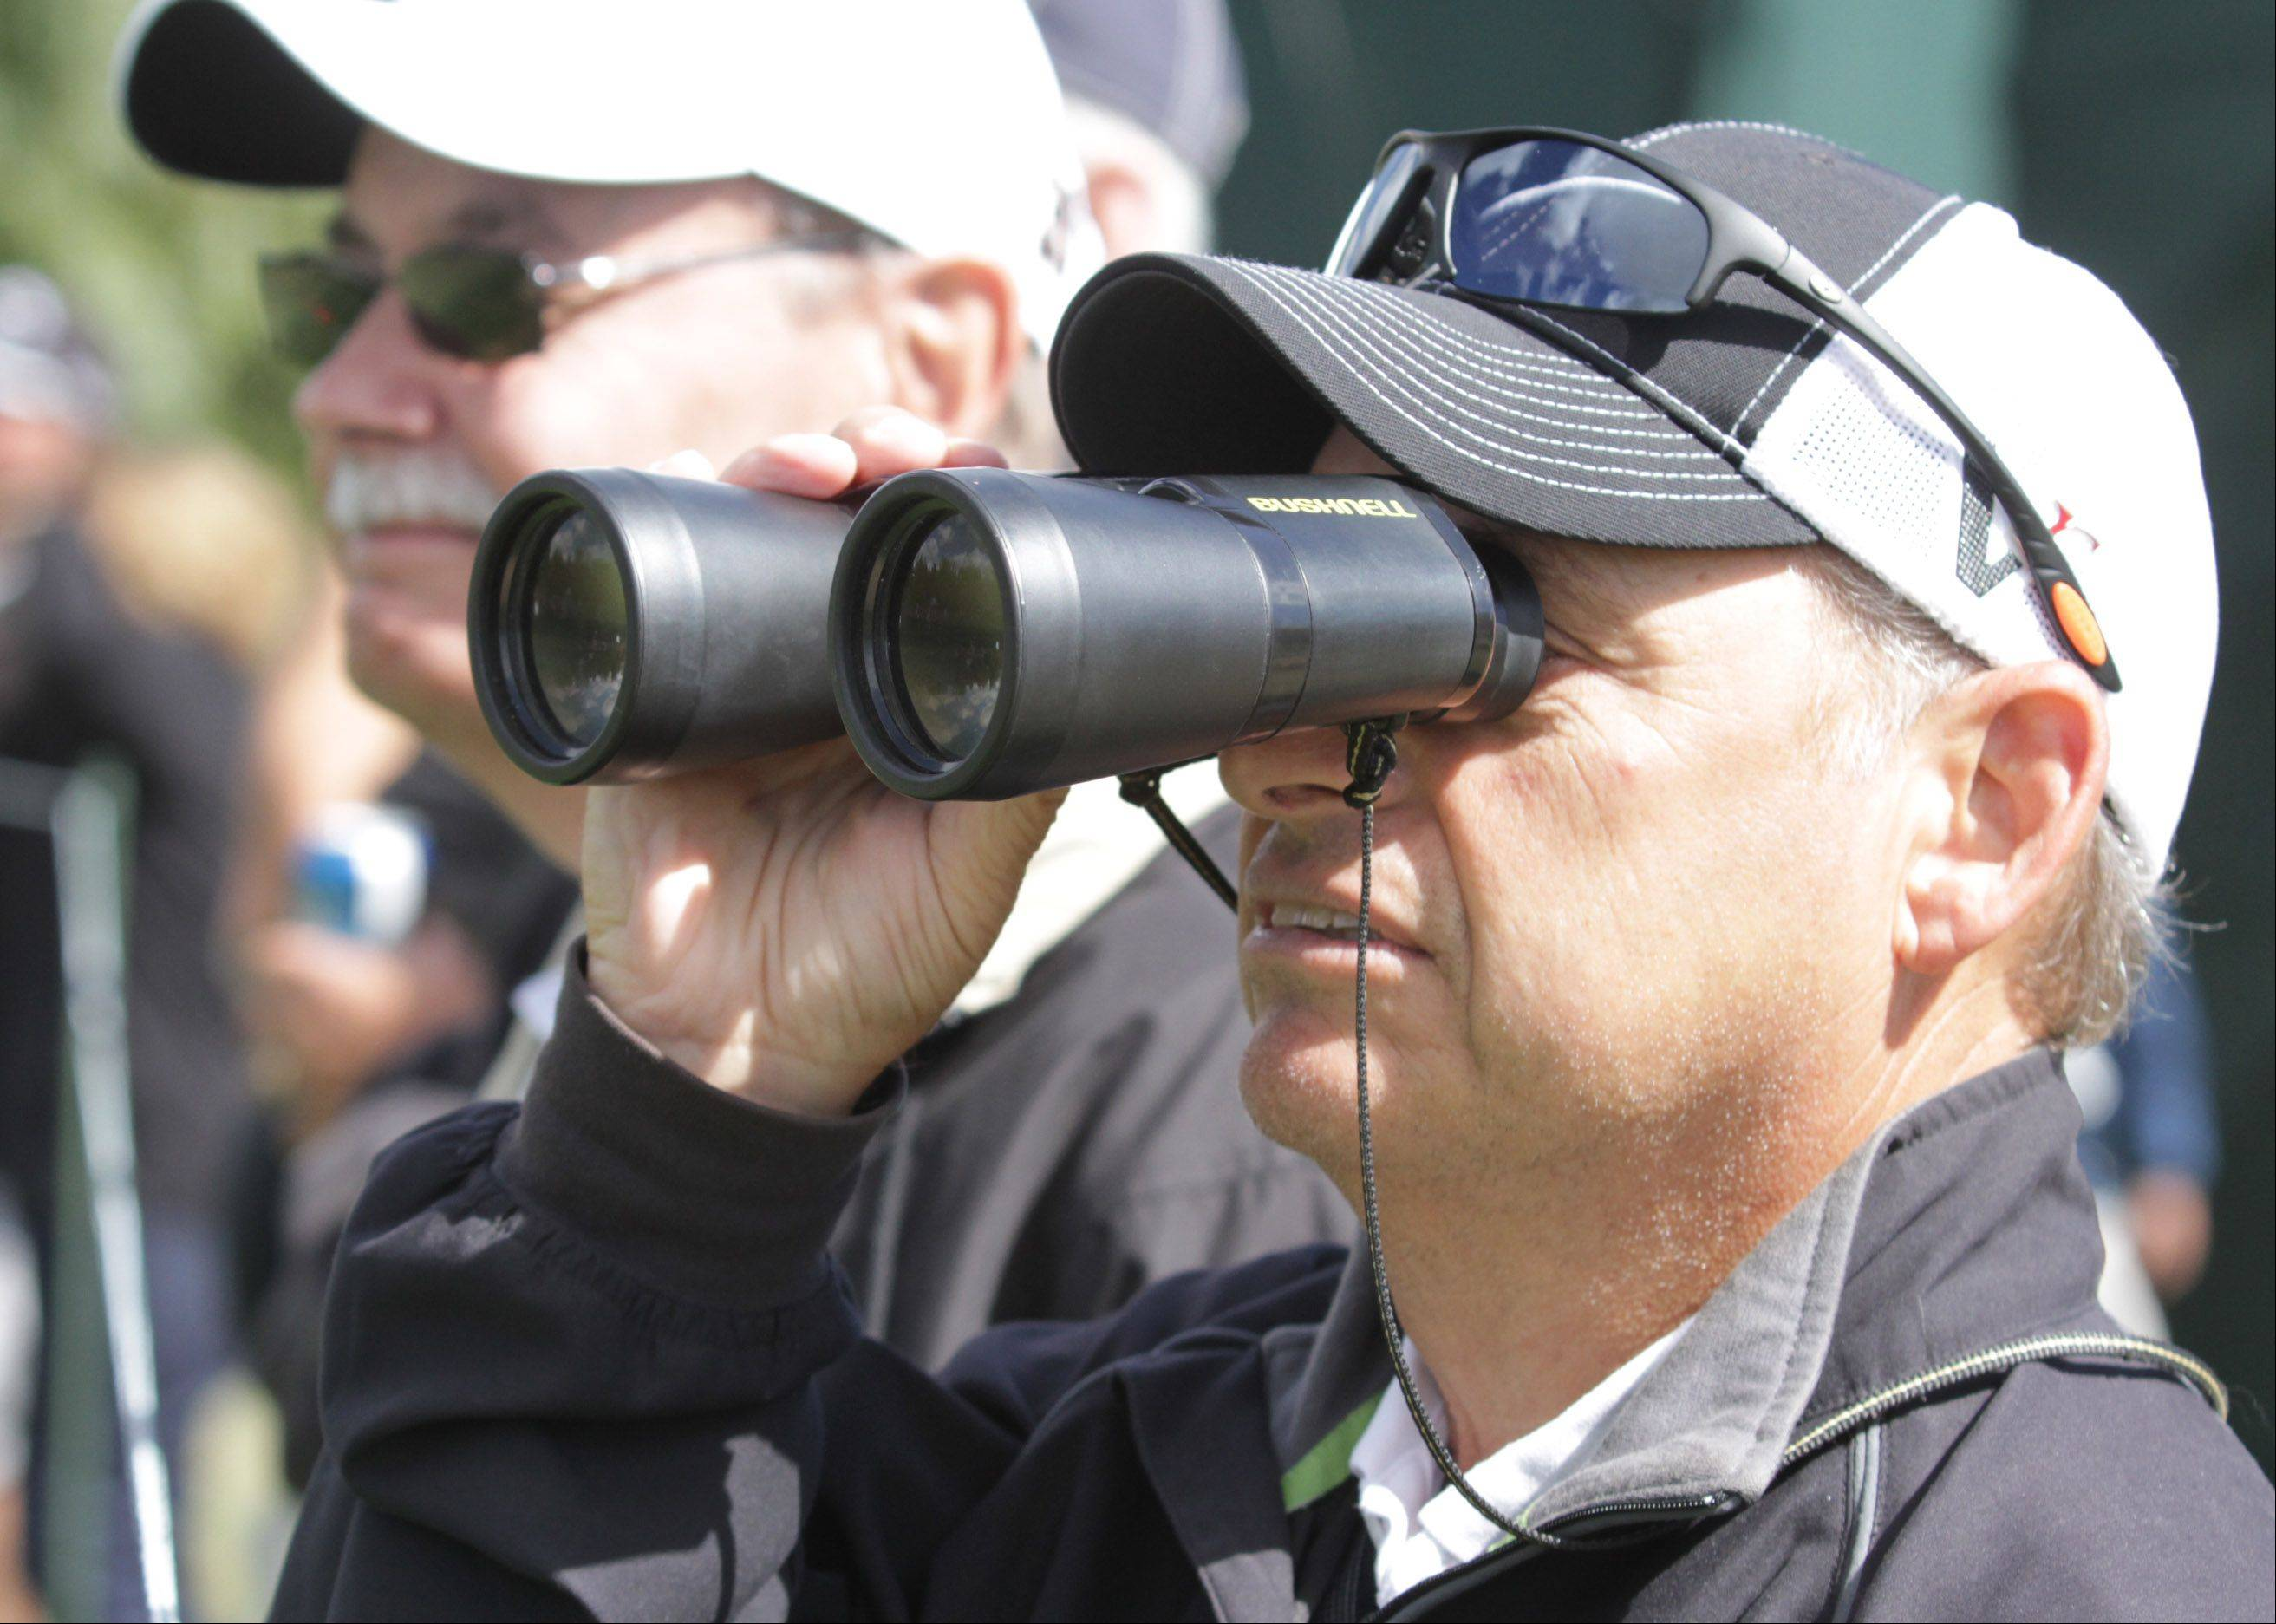 Pete Catalano of Medinah watches Sergio Garcia on the 4th hole.